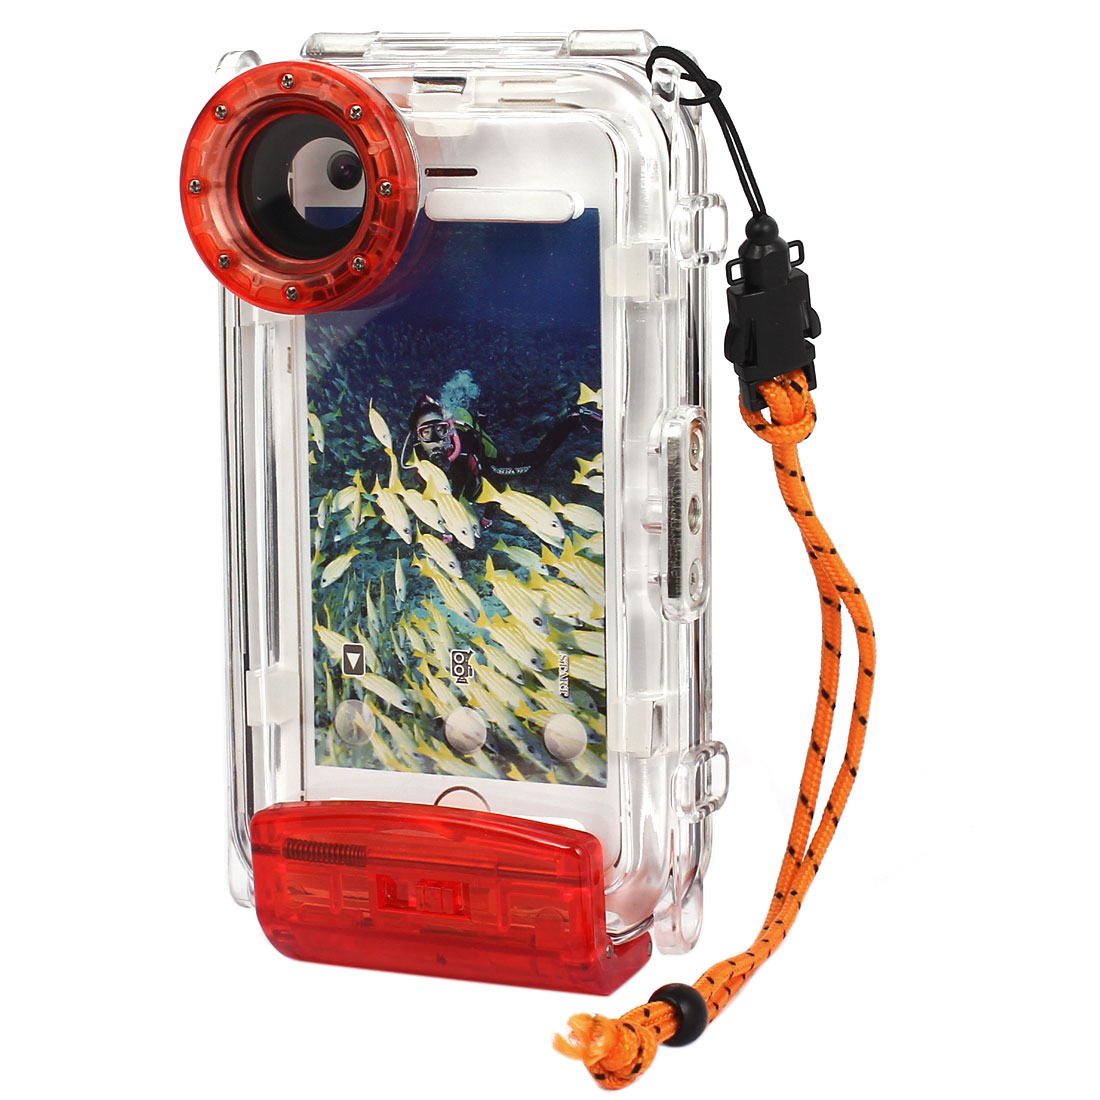 Waterproof Photo Housing Underwater Case Red for iPhone 5/5s/5c